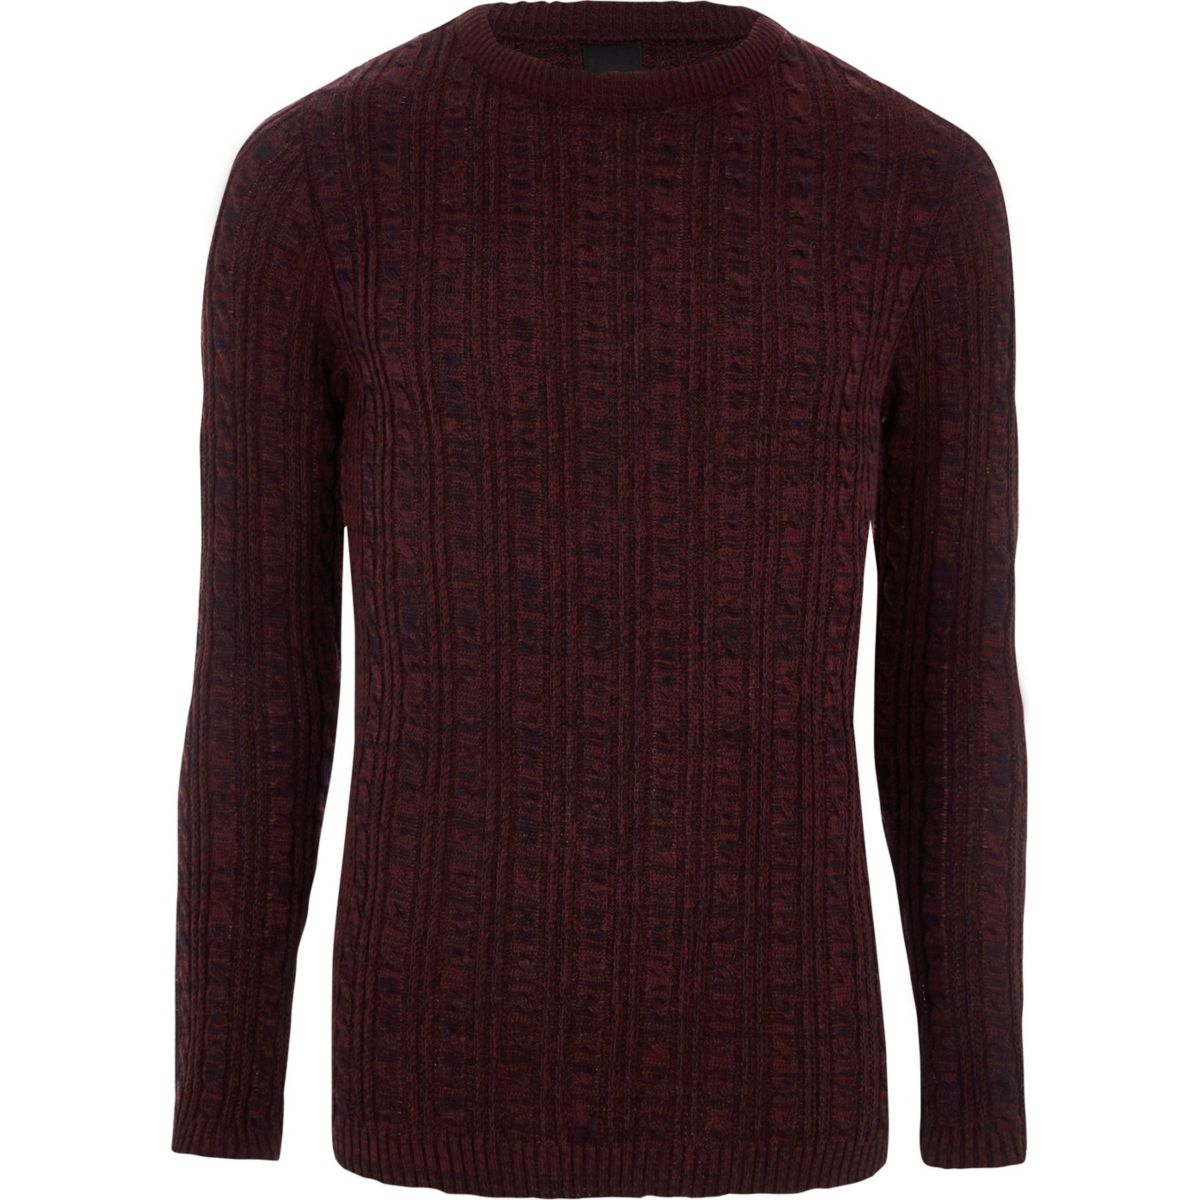 Burgundy cable knit muscle fit sweater